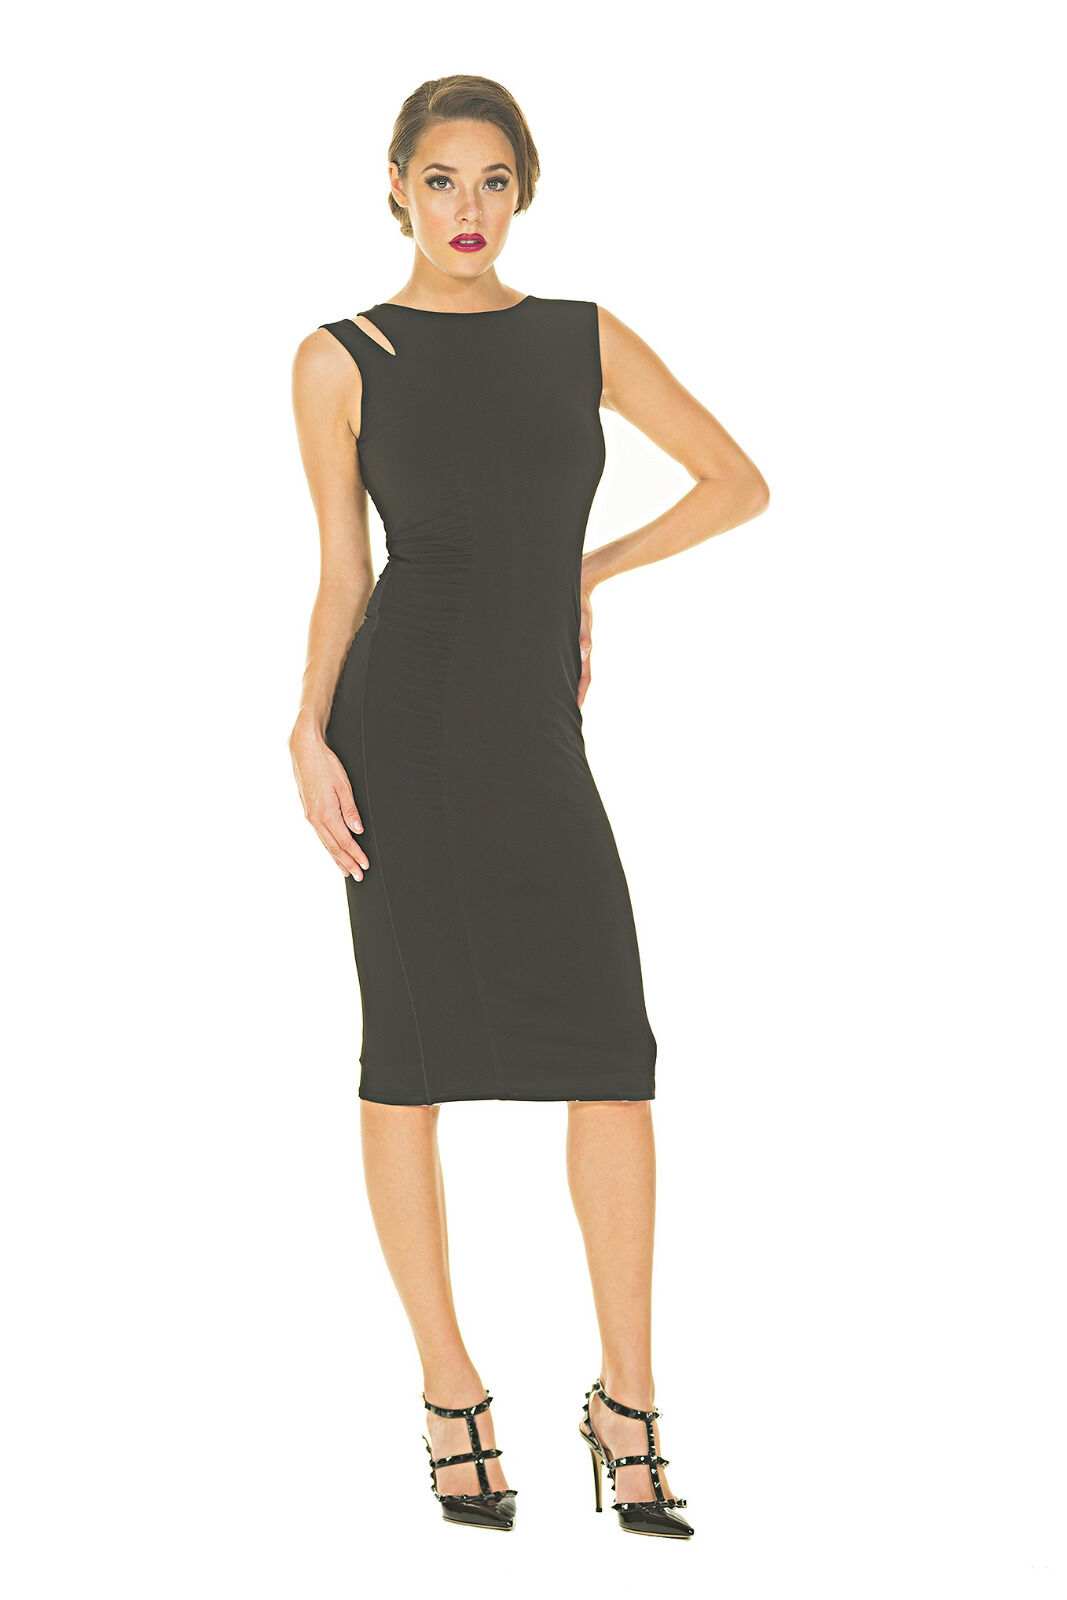 Ladies Eva Varro Side Ruched Shoulder Cutout Dress - Beautiful